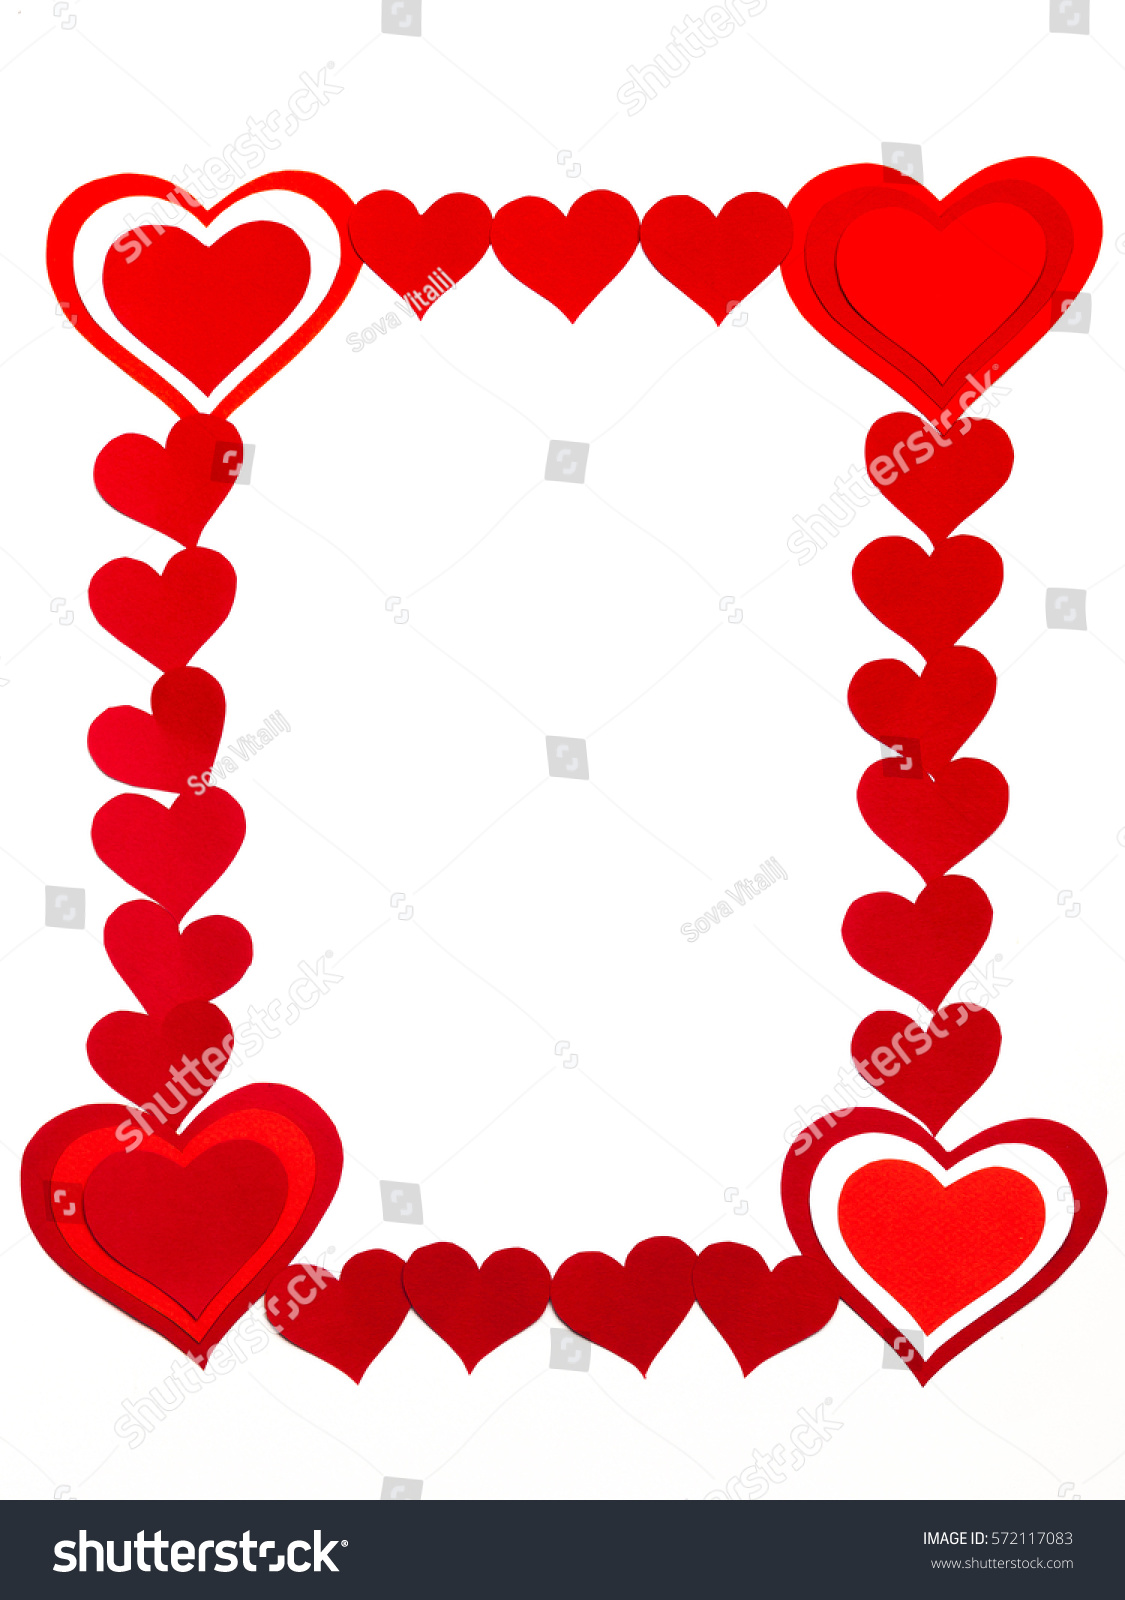 Frame On February 14 Valentines Day Stock Photo (Safe to Use ...